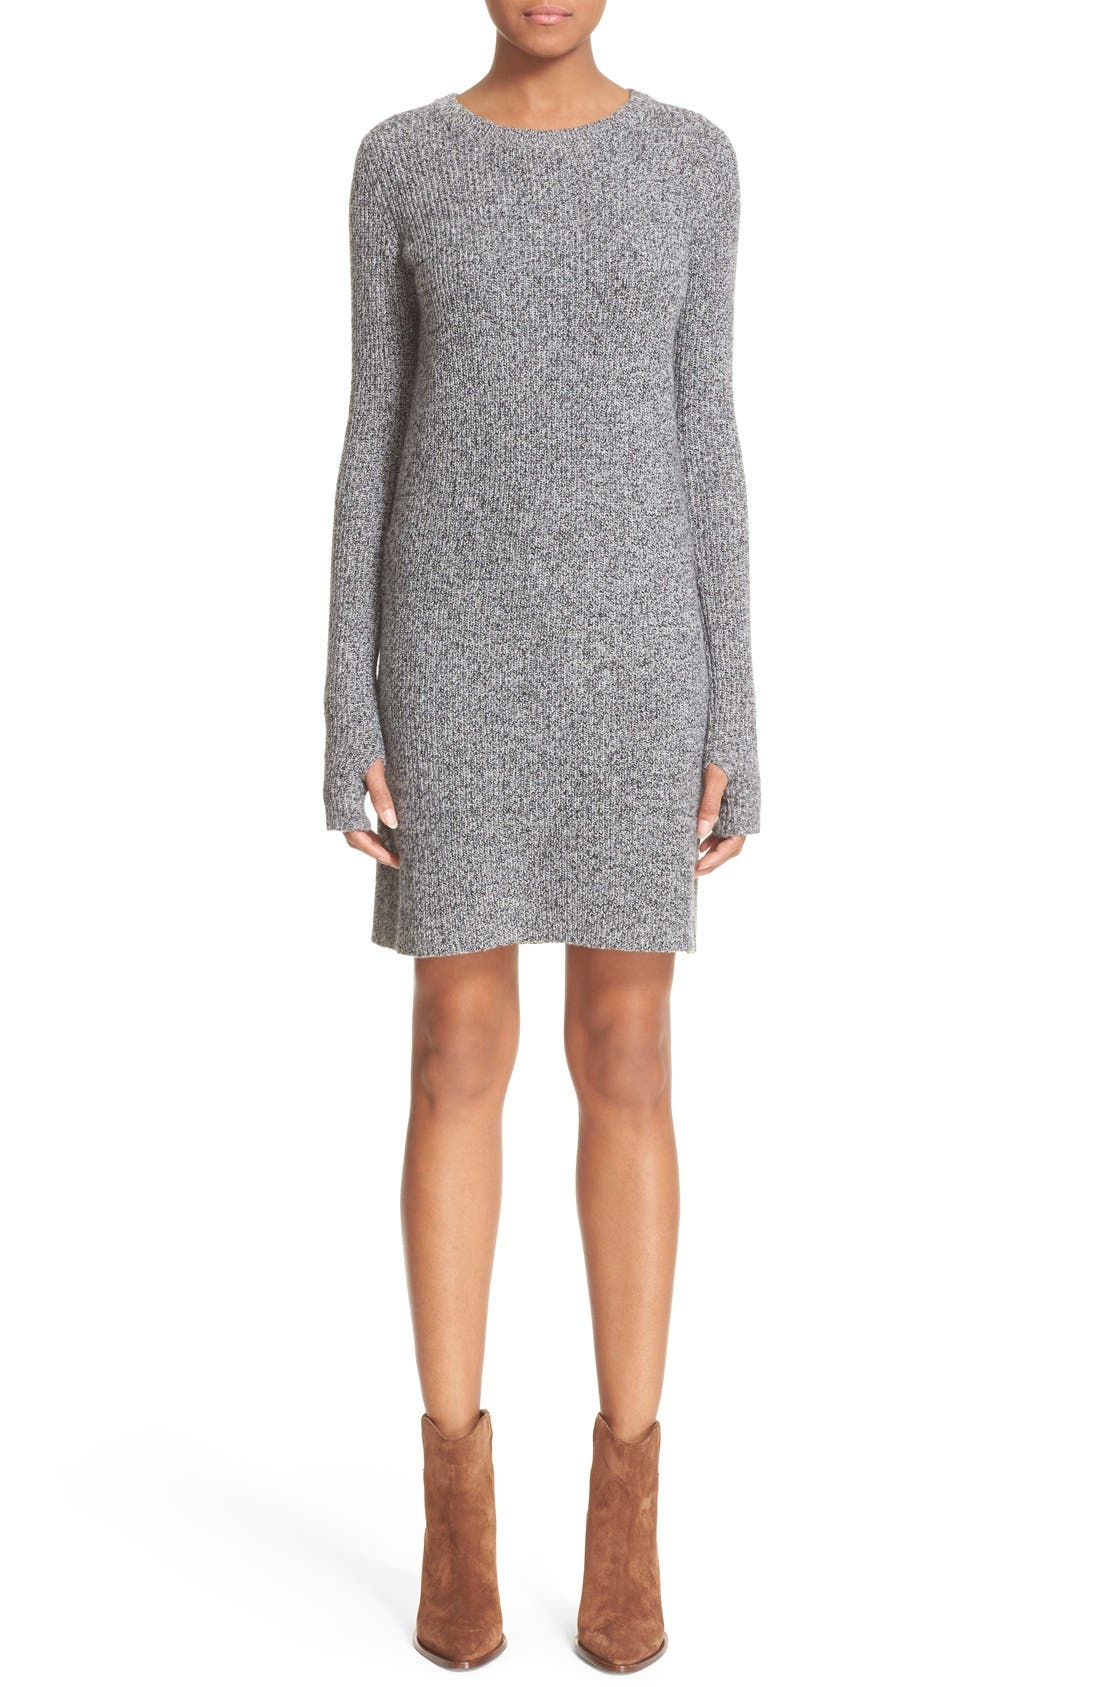 Main Image - Current/Elliott 'The Easy Sweater' Wool & Cashmere Sweater Dress